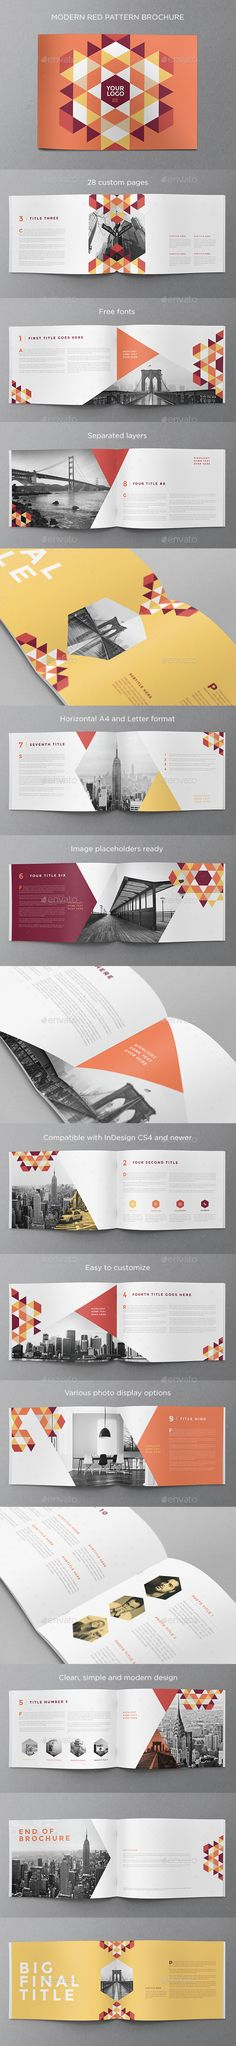 Square Brochure \/ Catalogs by tujuhbenua on @creativemarket - pamphlet layout template